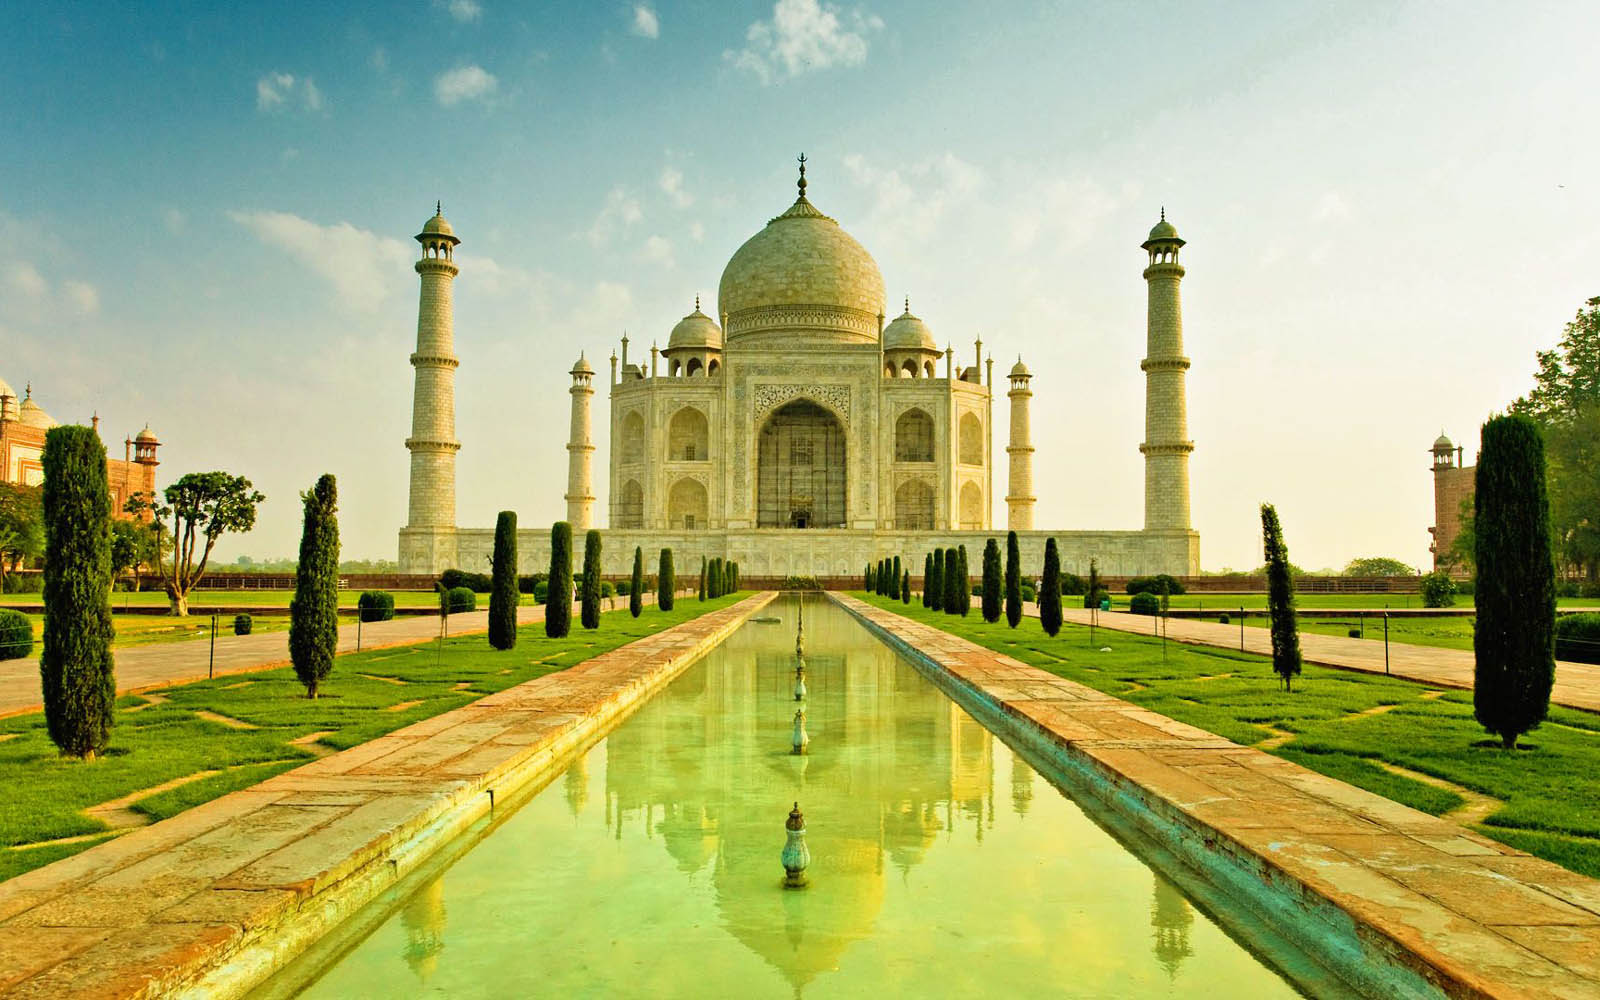 taj mahal - agra photos, images and wallpapers, hd images, near